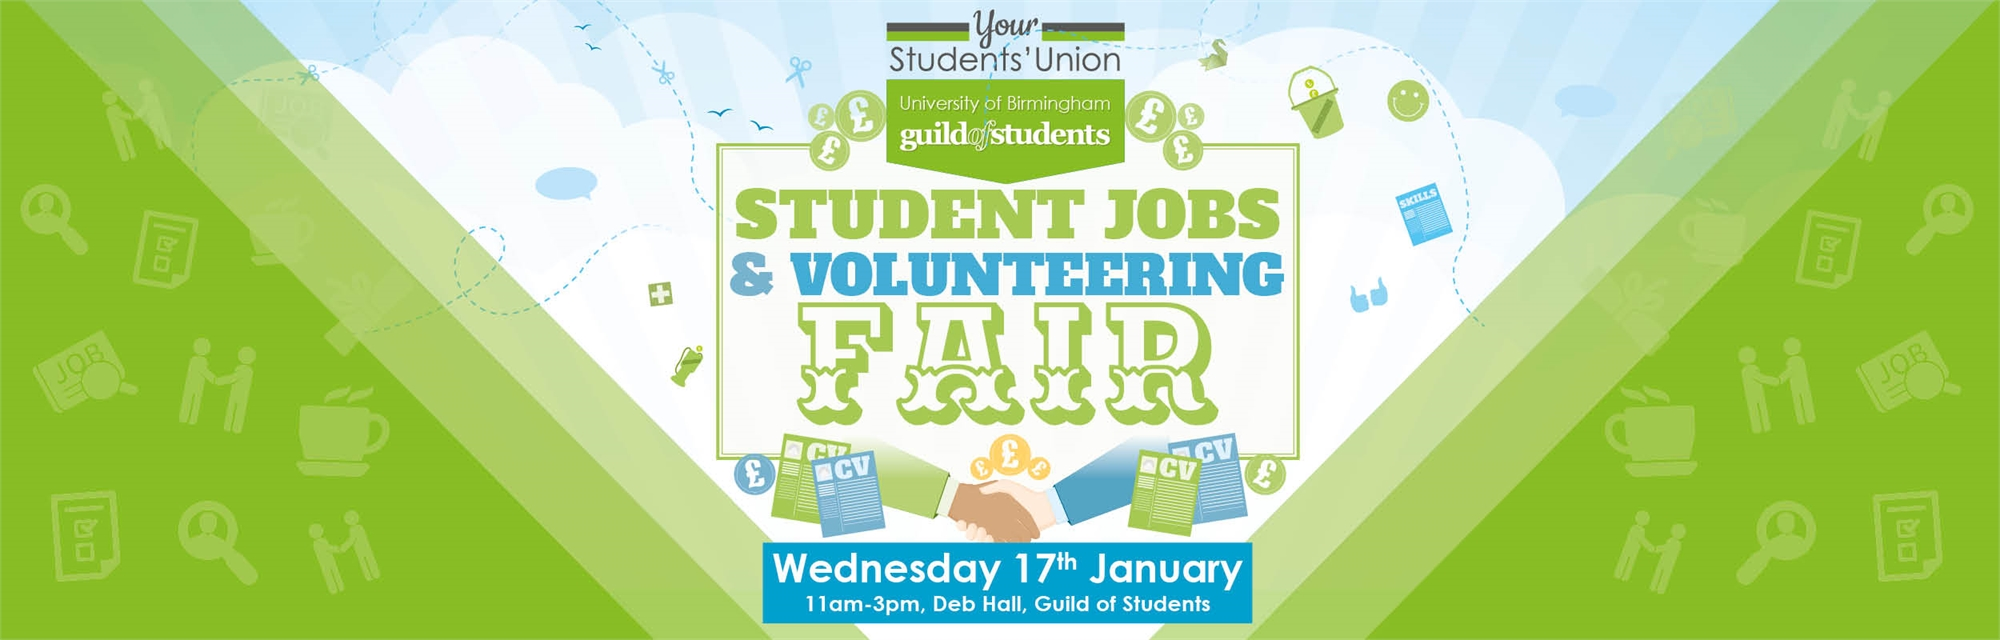 Student Jobs & Volunteering Fair - Wednesday 18th January 2018 - 11am - 3pm Deb Hall - Guild of